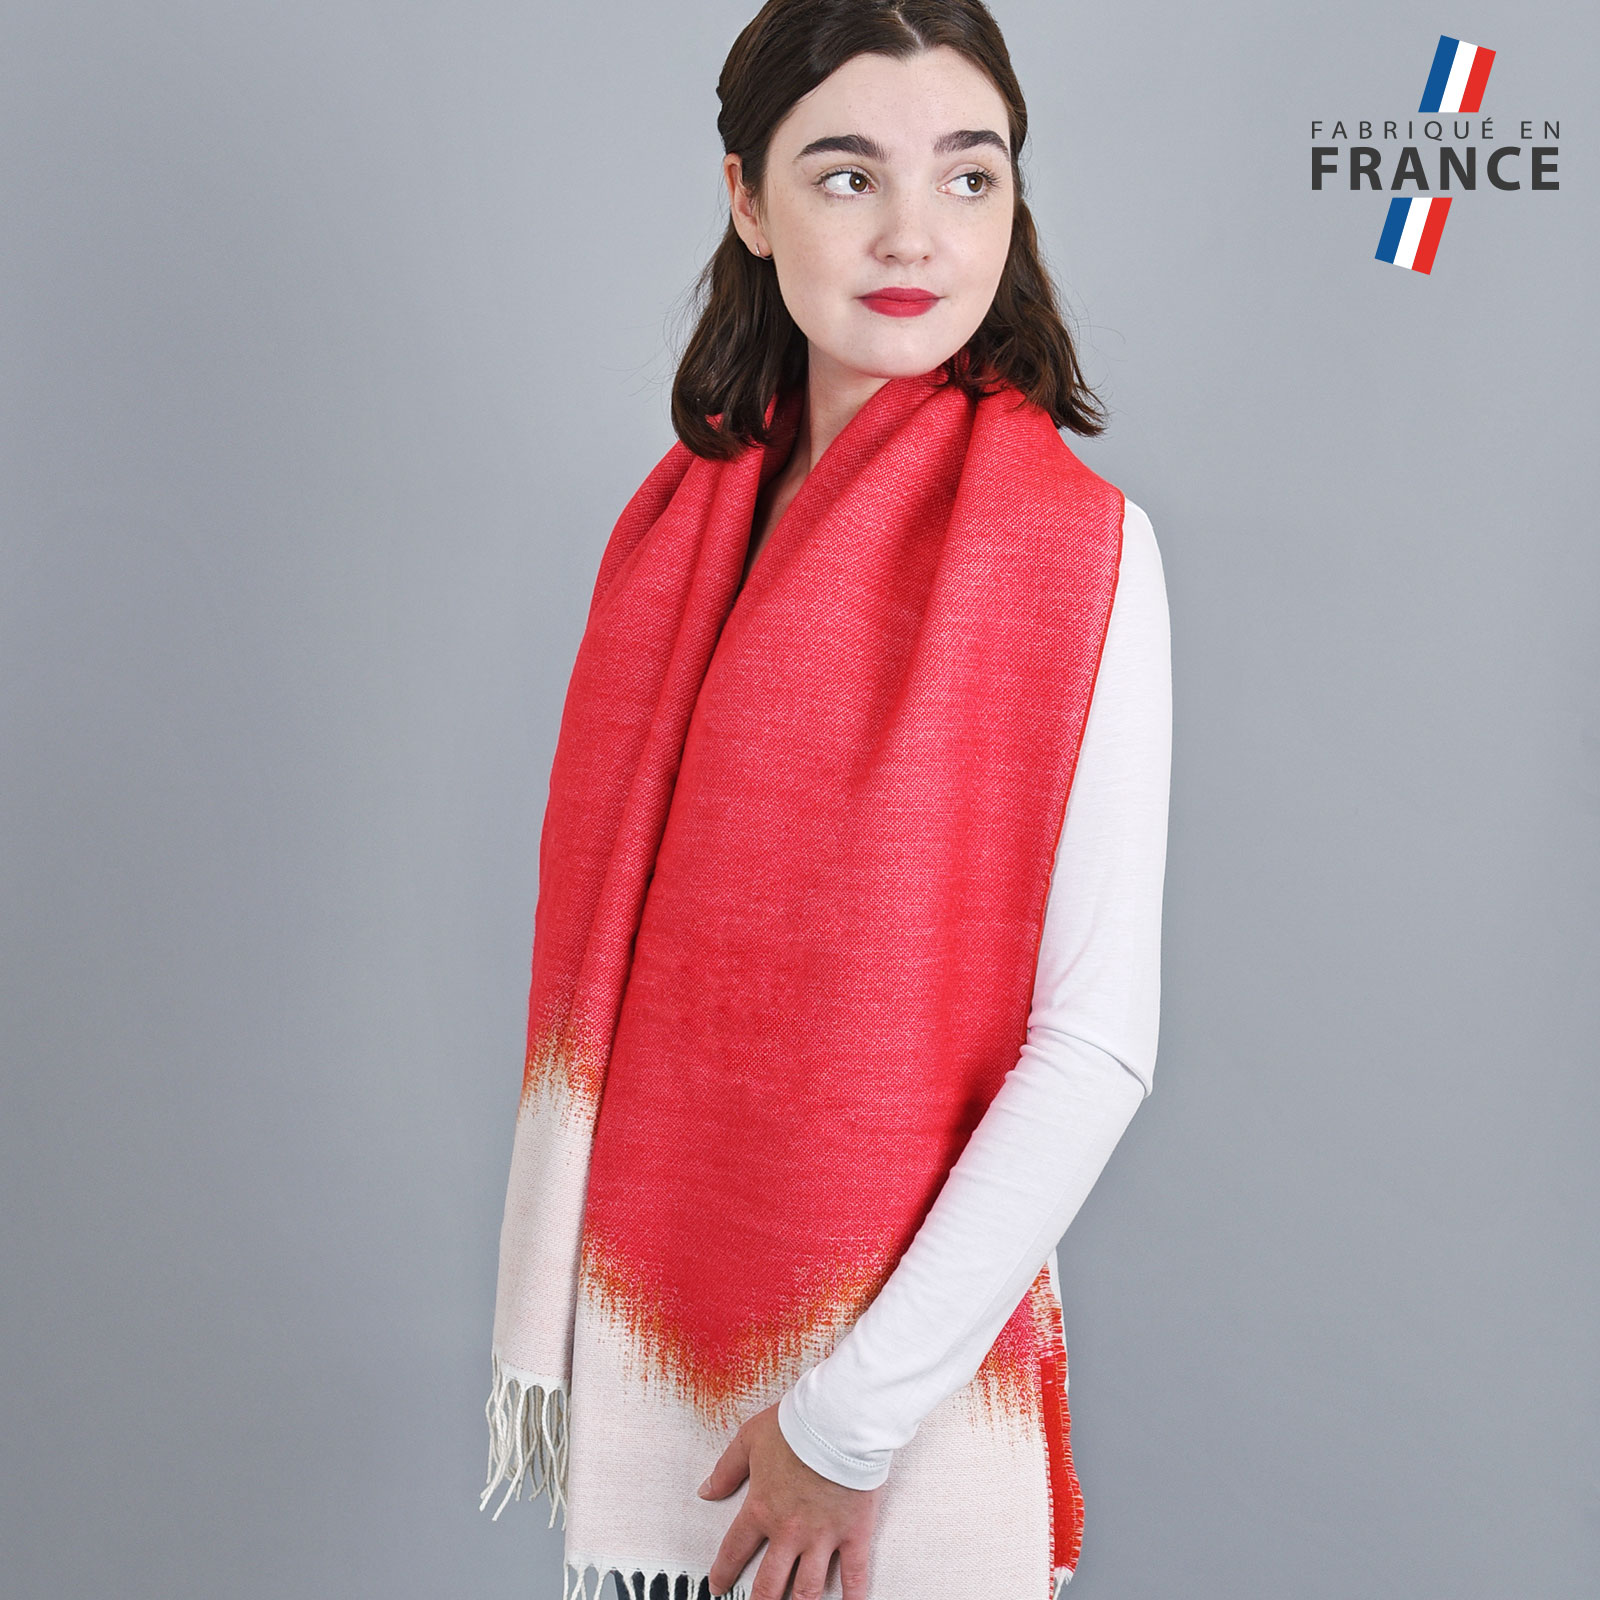 AT-04166-VF16-2-LB_FR-chale-femme-rouge-degrade